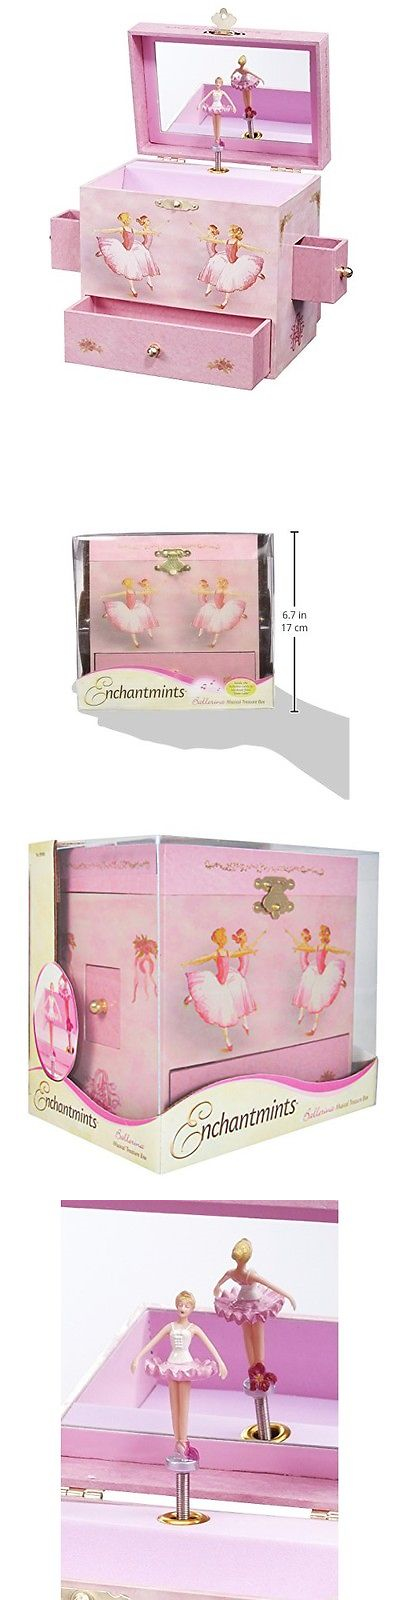 Other Childrens Jewelry 84608 Enchantmints Ballerina Musical